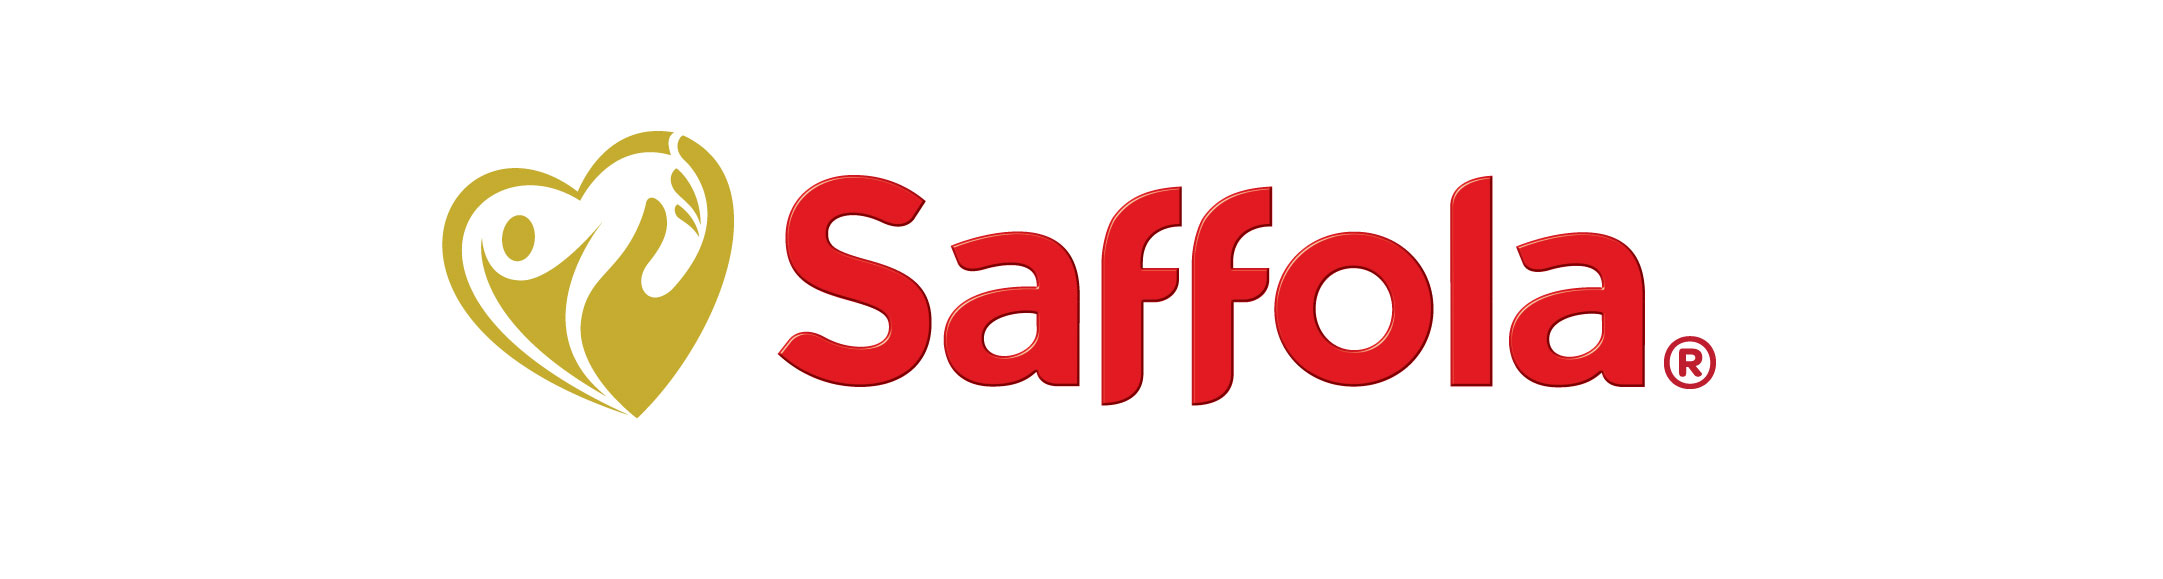 Saffola Offers